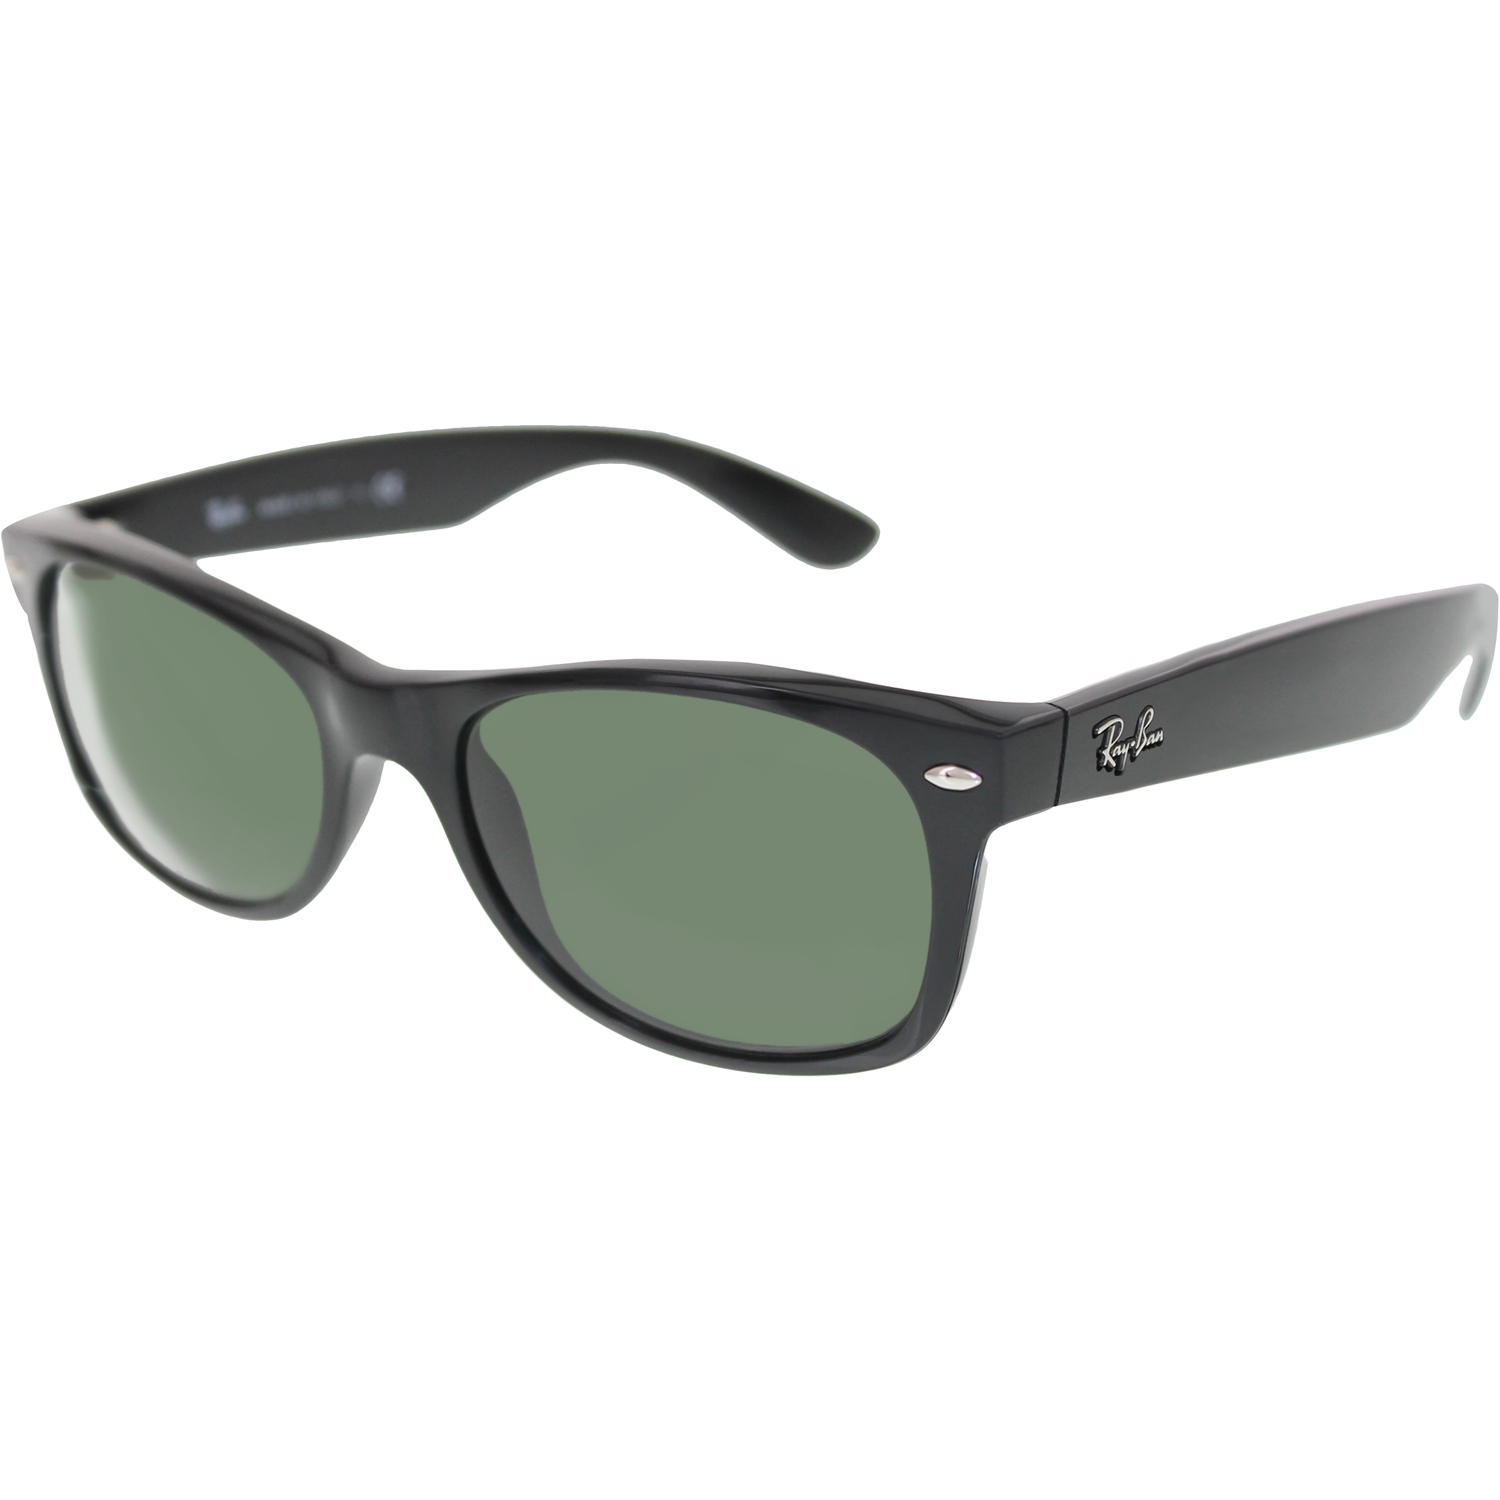 ray ban sunglasses new orleans  ray ban men's new wayfarer rb2132 901 52 black wayfarer sunglasses walmart